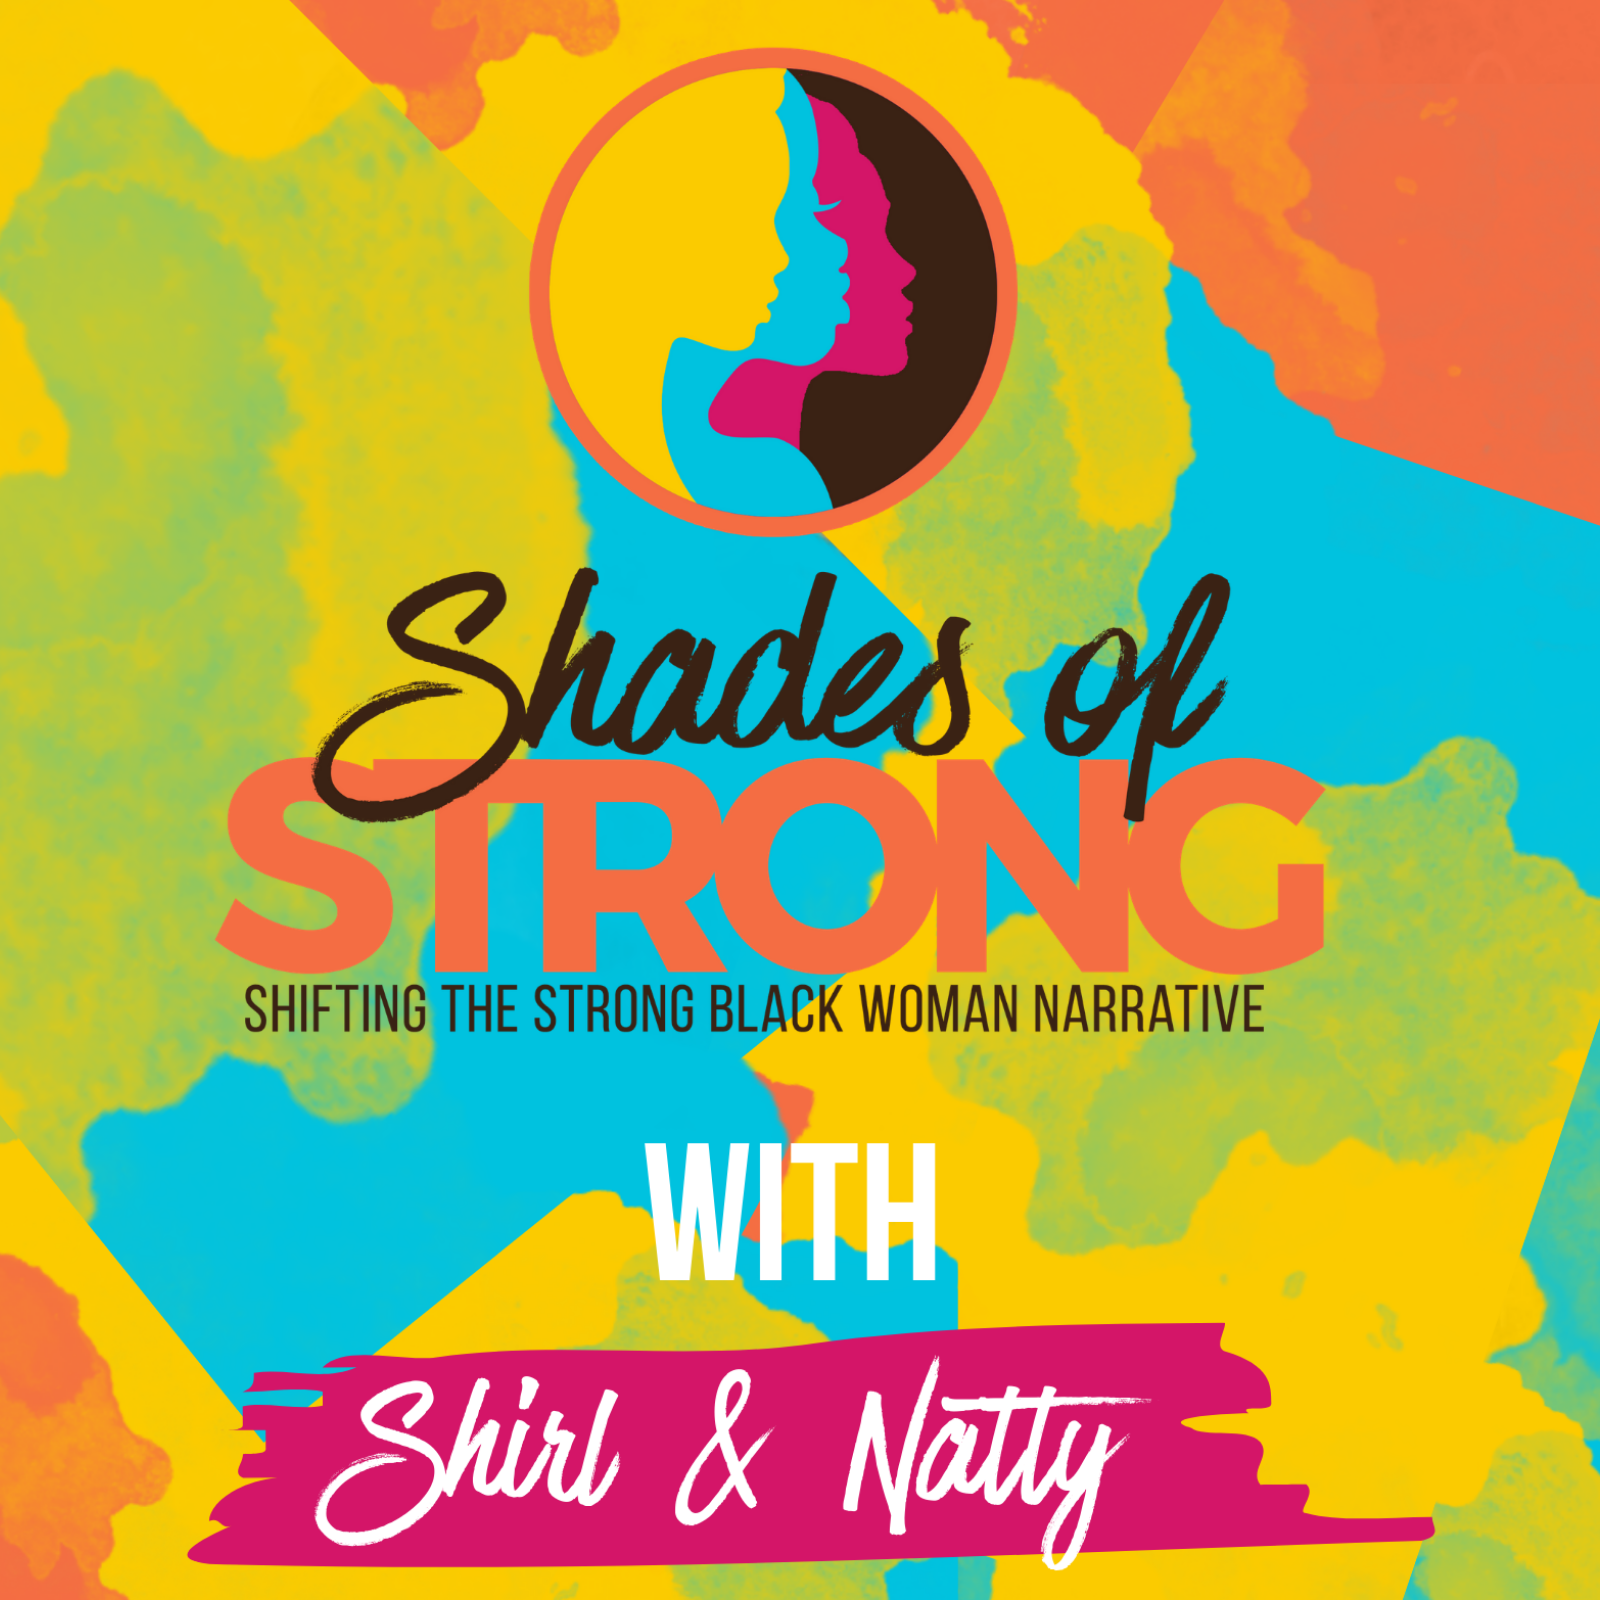 Shades of Strong ™ | Shifting the Strong Black Woman Narrative